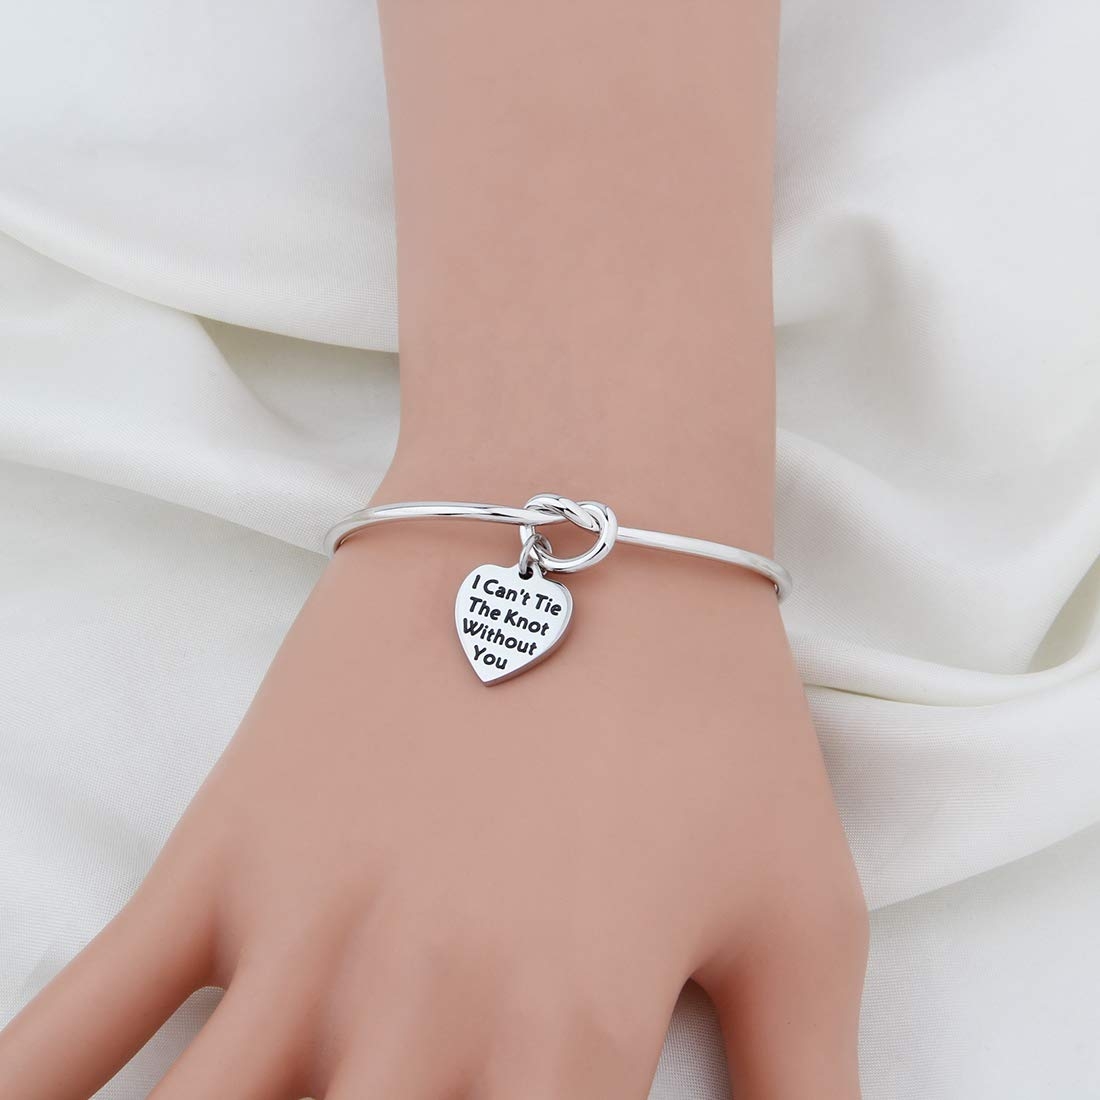 WUSUANED I Cant Tie The Knot Without You Bridesmaid Bracelet Wedding Jewelry Bridal Party Gift